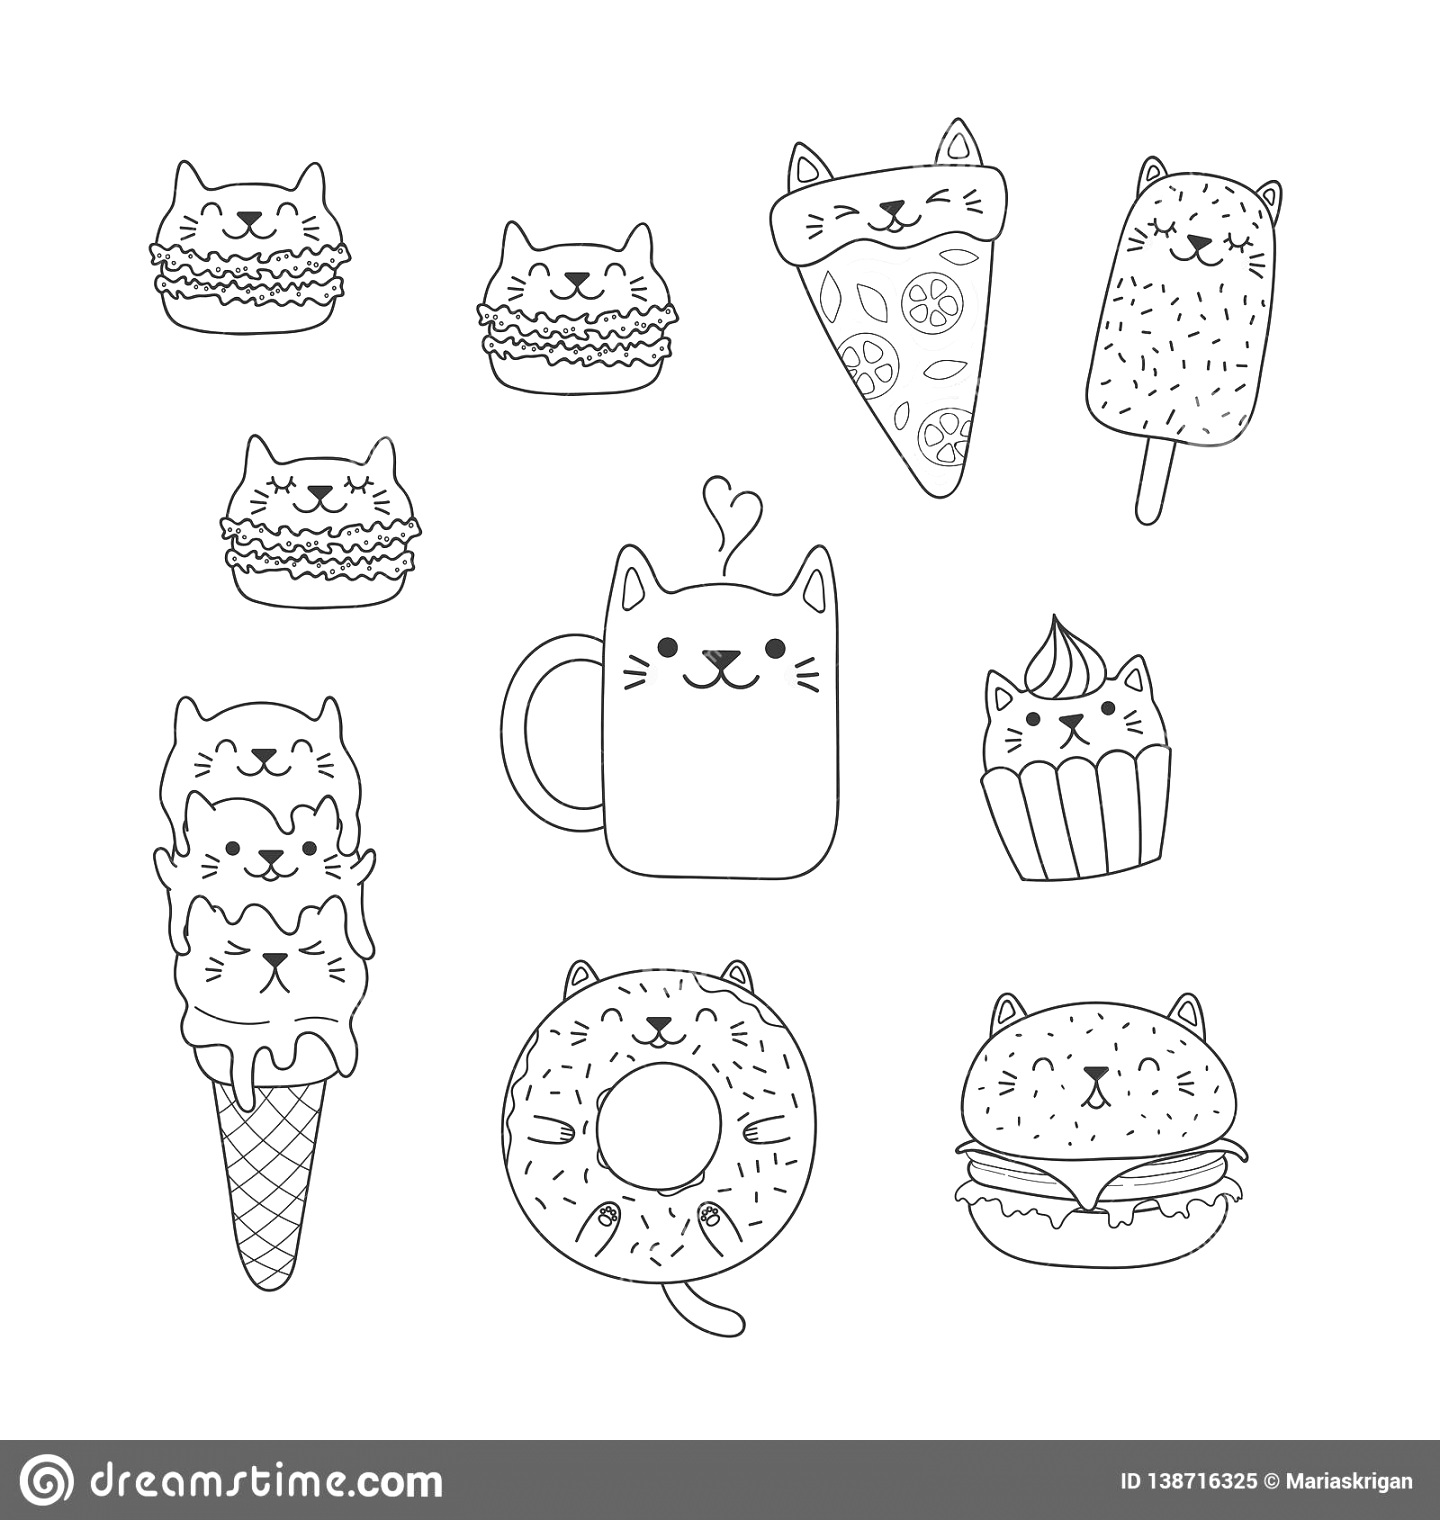 online food coloring pages to download and print